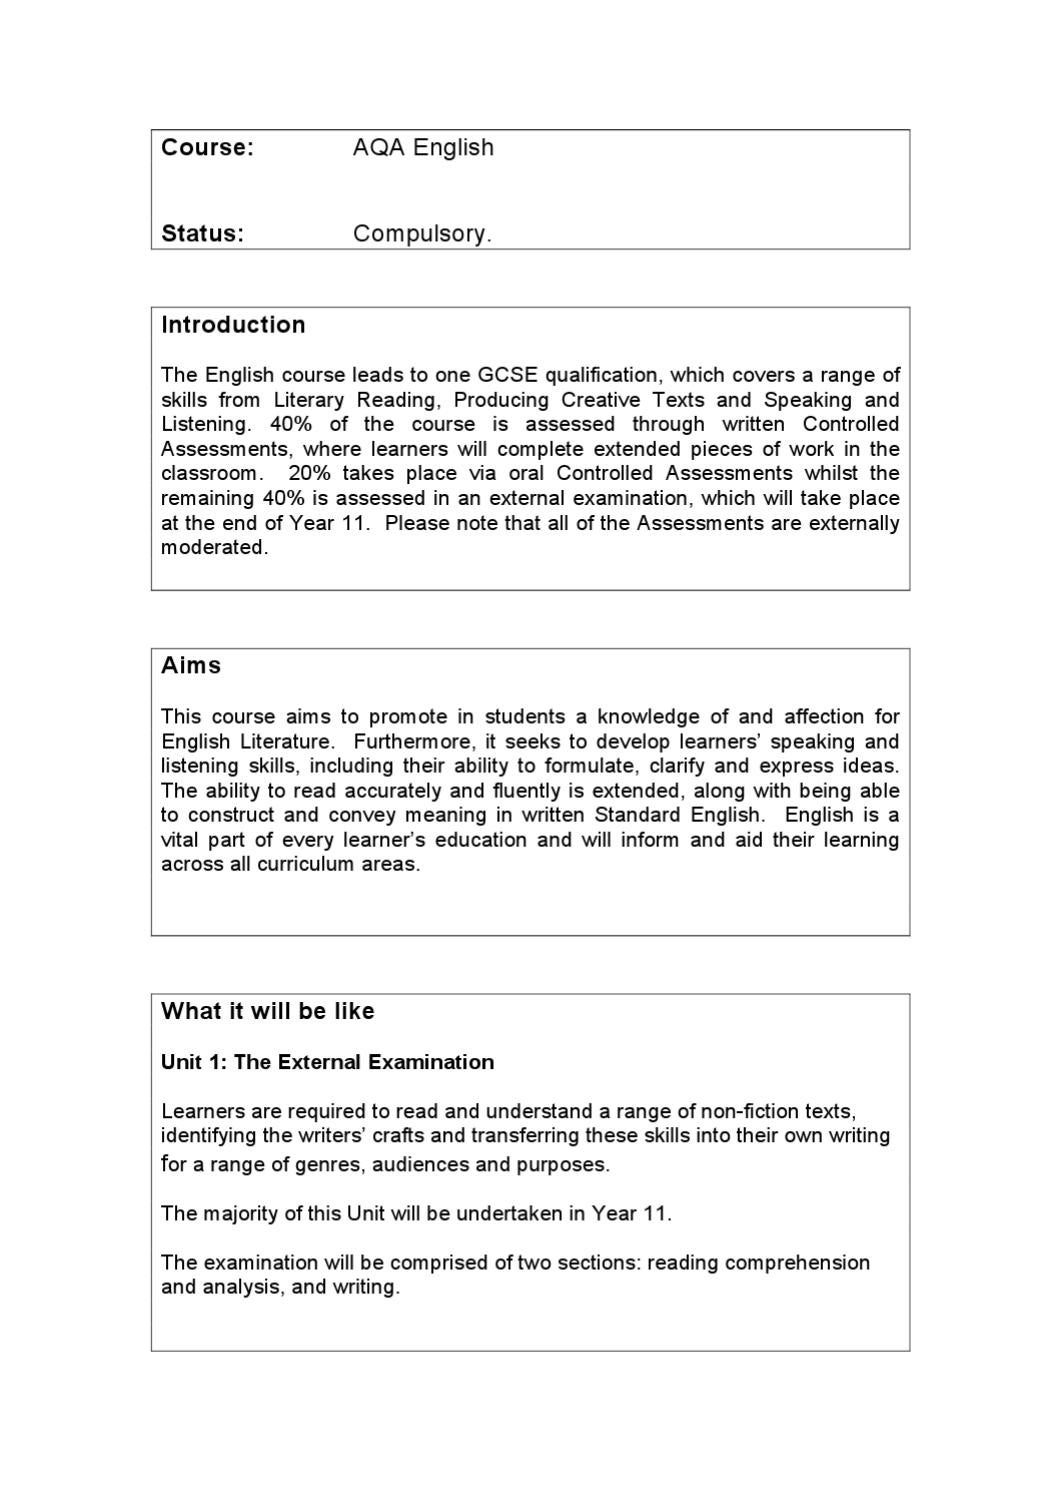 aqa essay writing english Aqa gcse english language creative writing mark scheme, - online creative writing publications certified professional essay writers & resume experts creating amazing resumes that help clients across the globe win more interviews with top employers and get better job offers everyday.